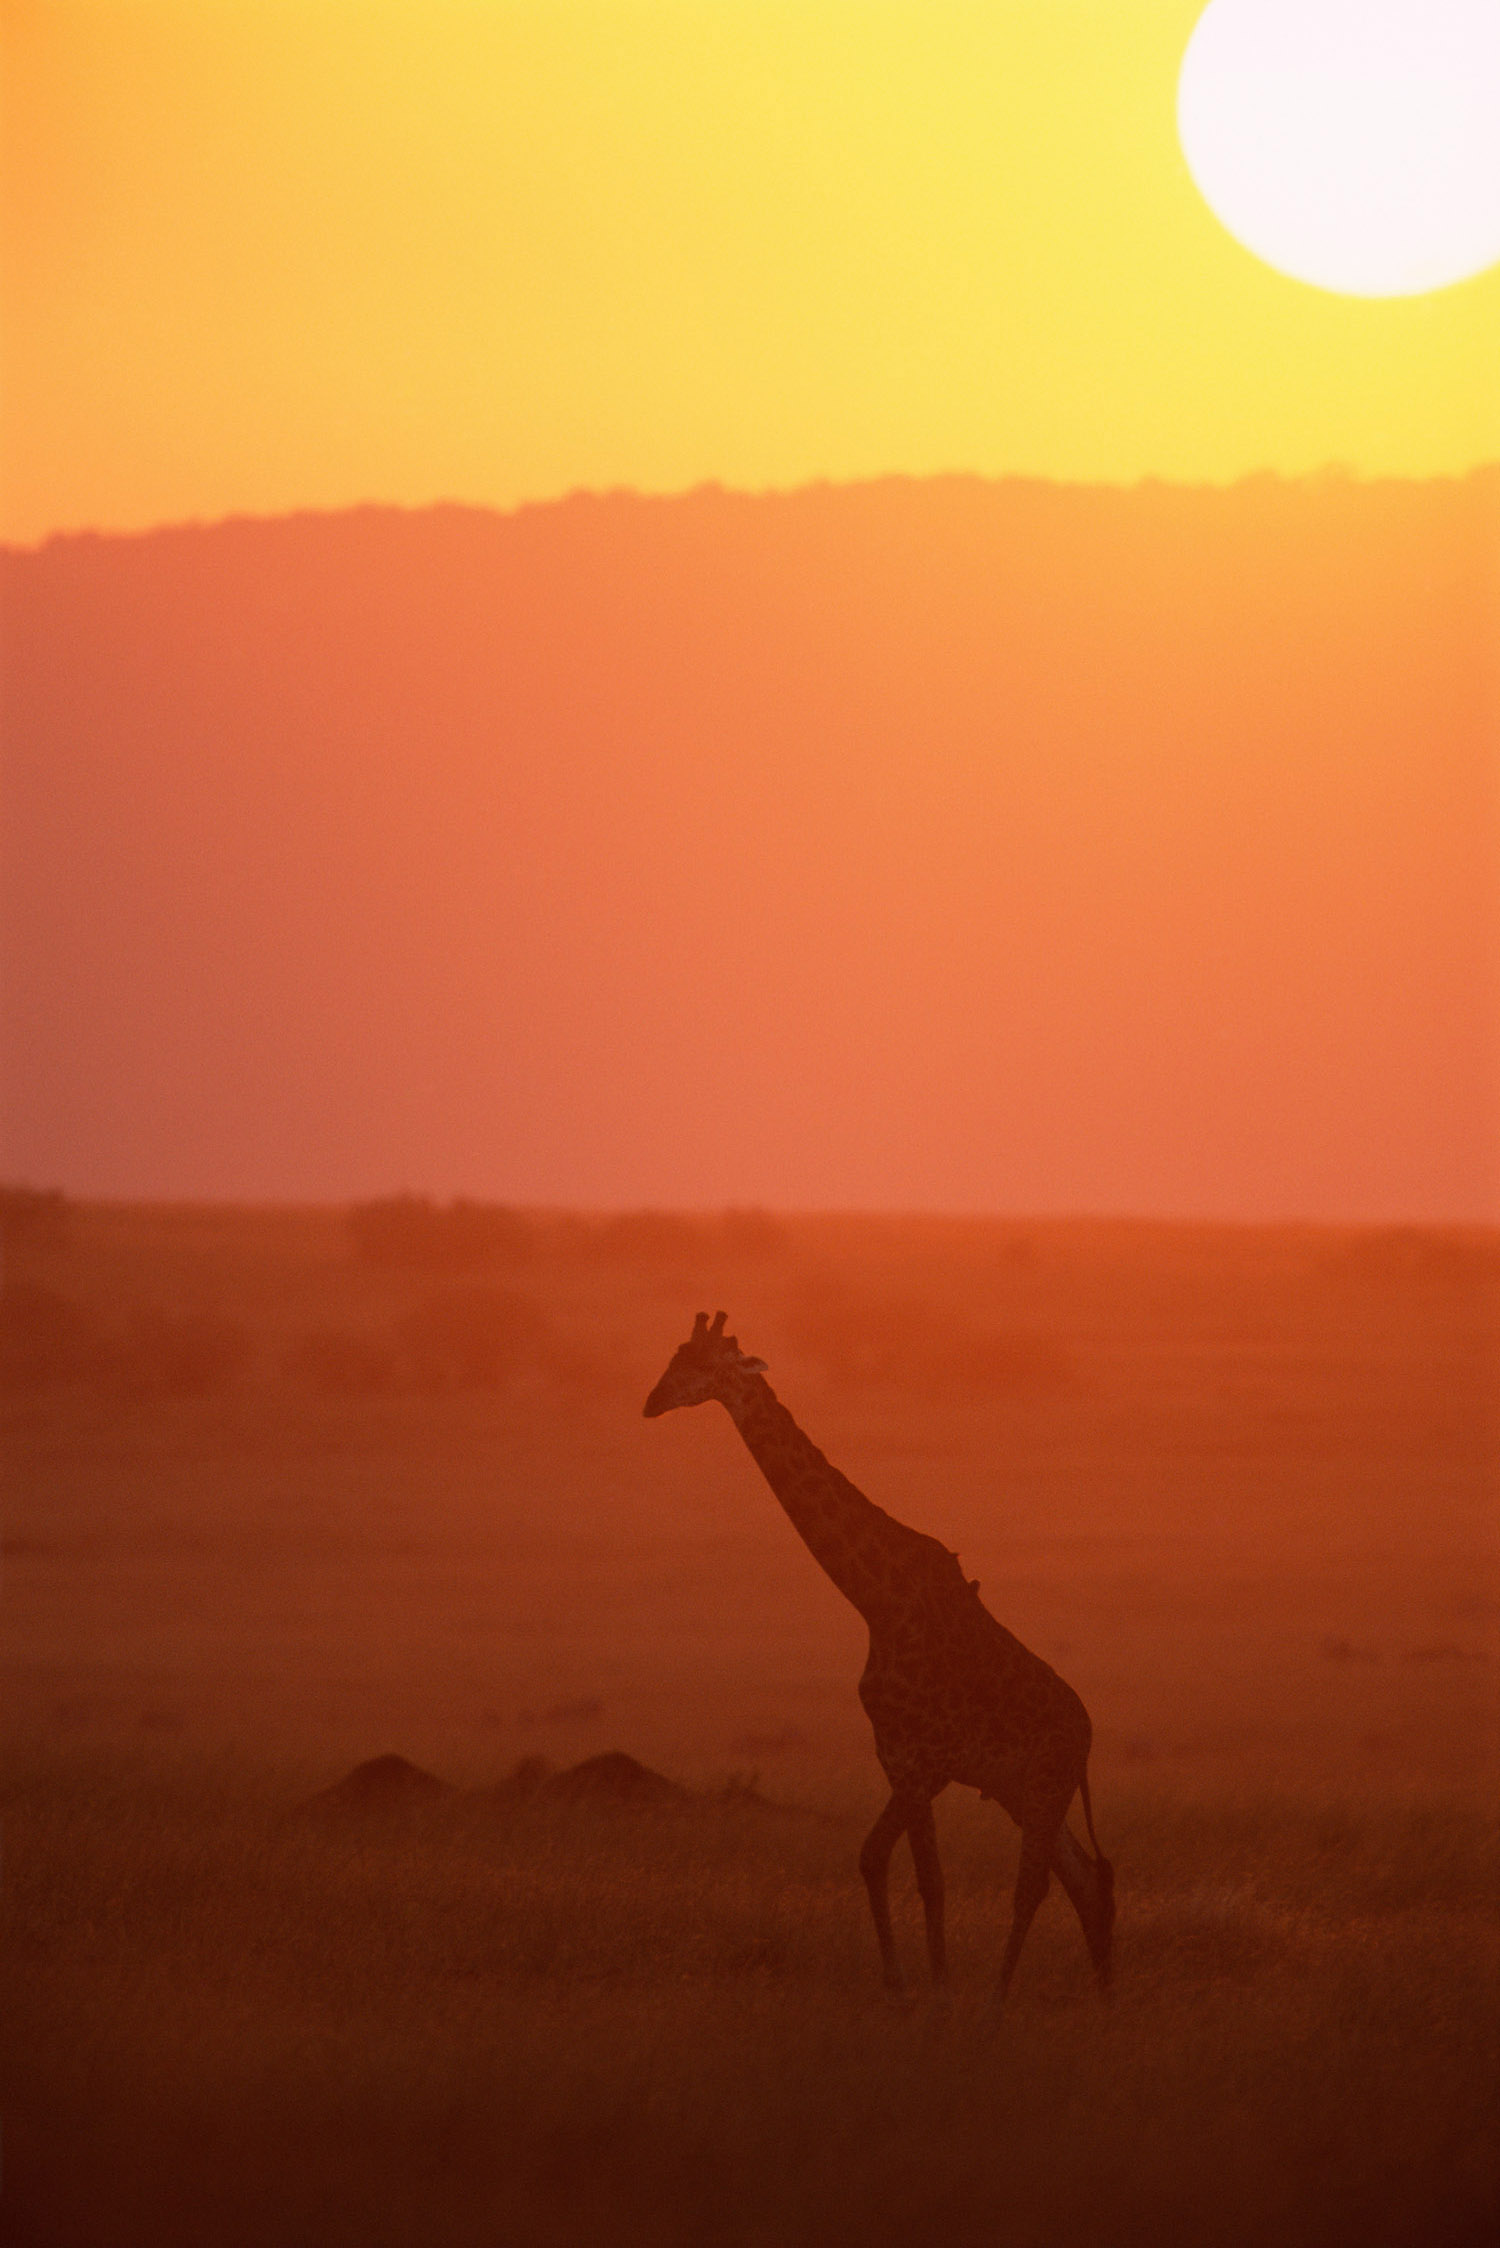 Maasai giraffe at sunset, Masai Mara National Reserve, Kenya